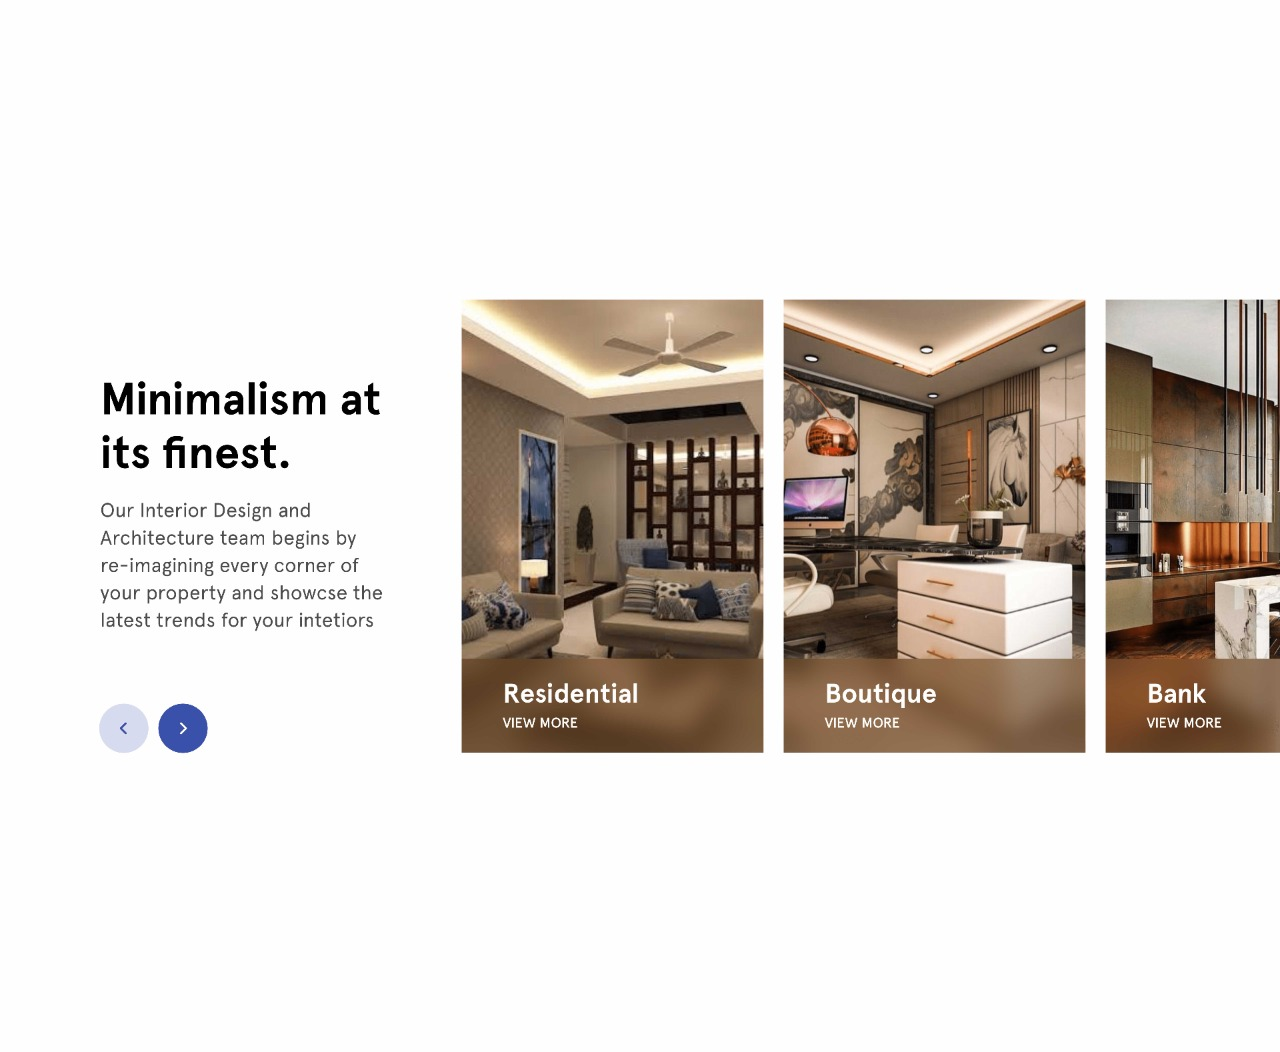 CreateBytes' work for AJ-INTERIORS